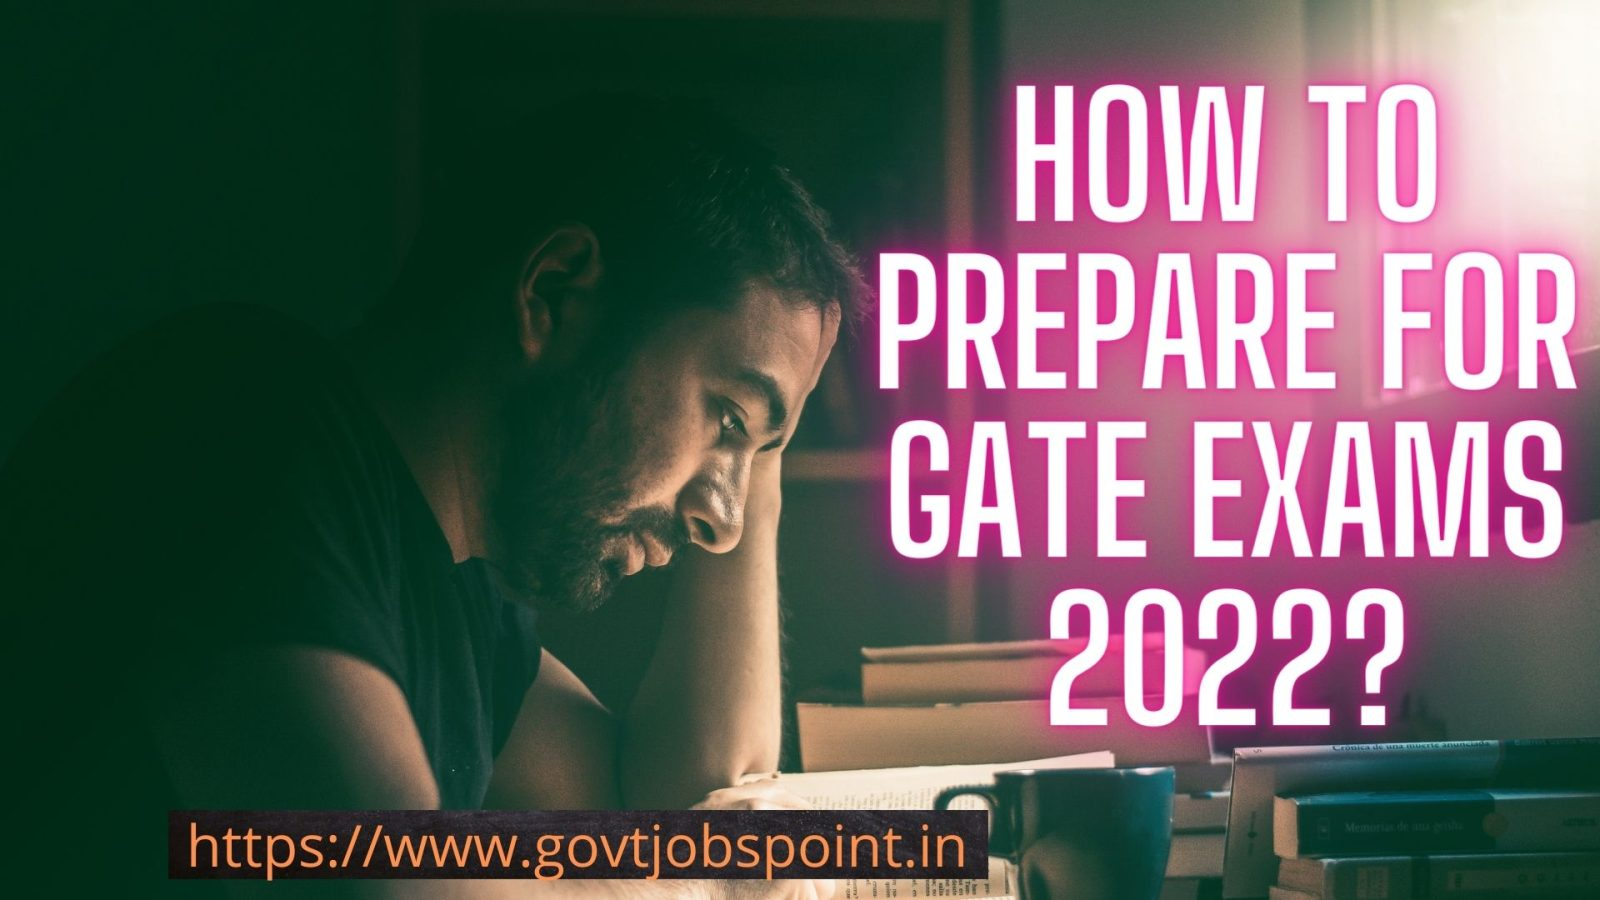 How to Prepare for Gate Exams 2022?